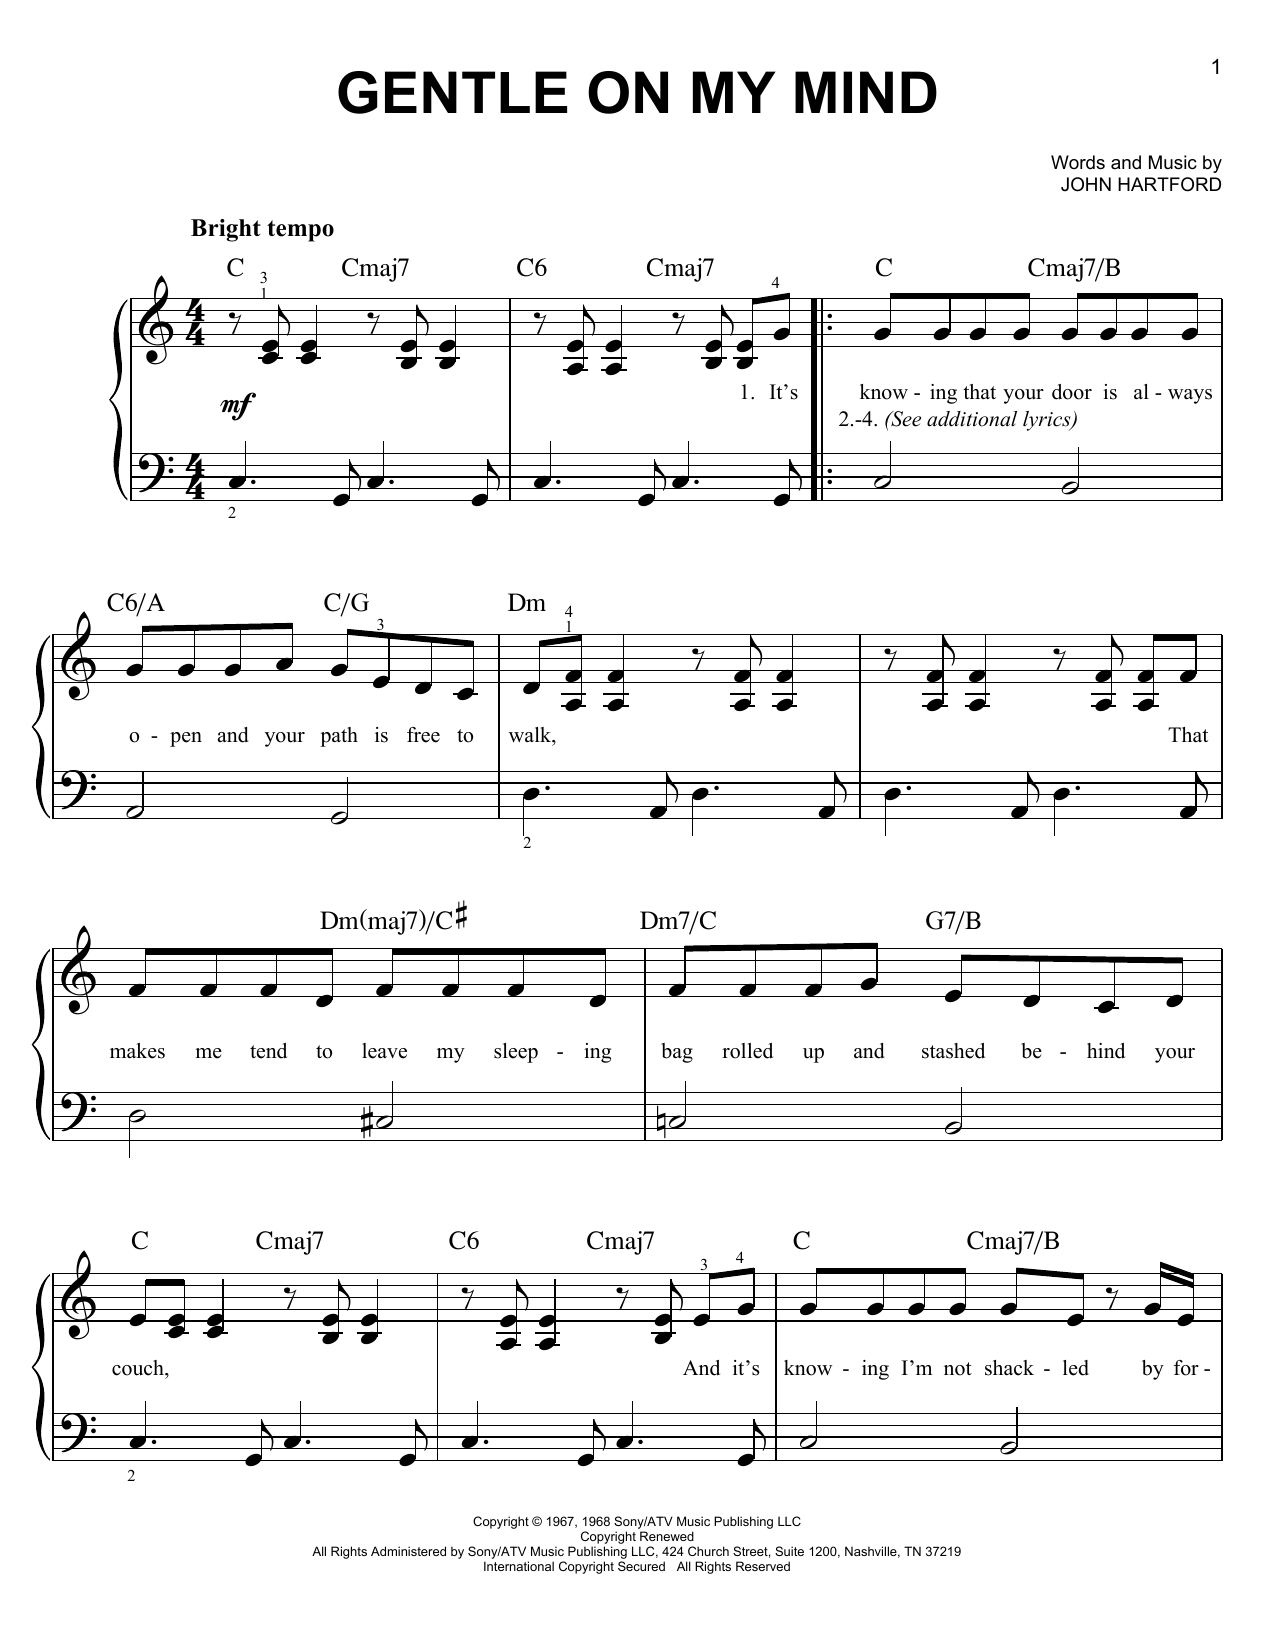 Glen Campbell Gentle On My Mind sheet music notes and chords. Download Printable PDF.